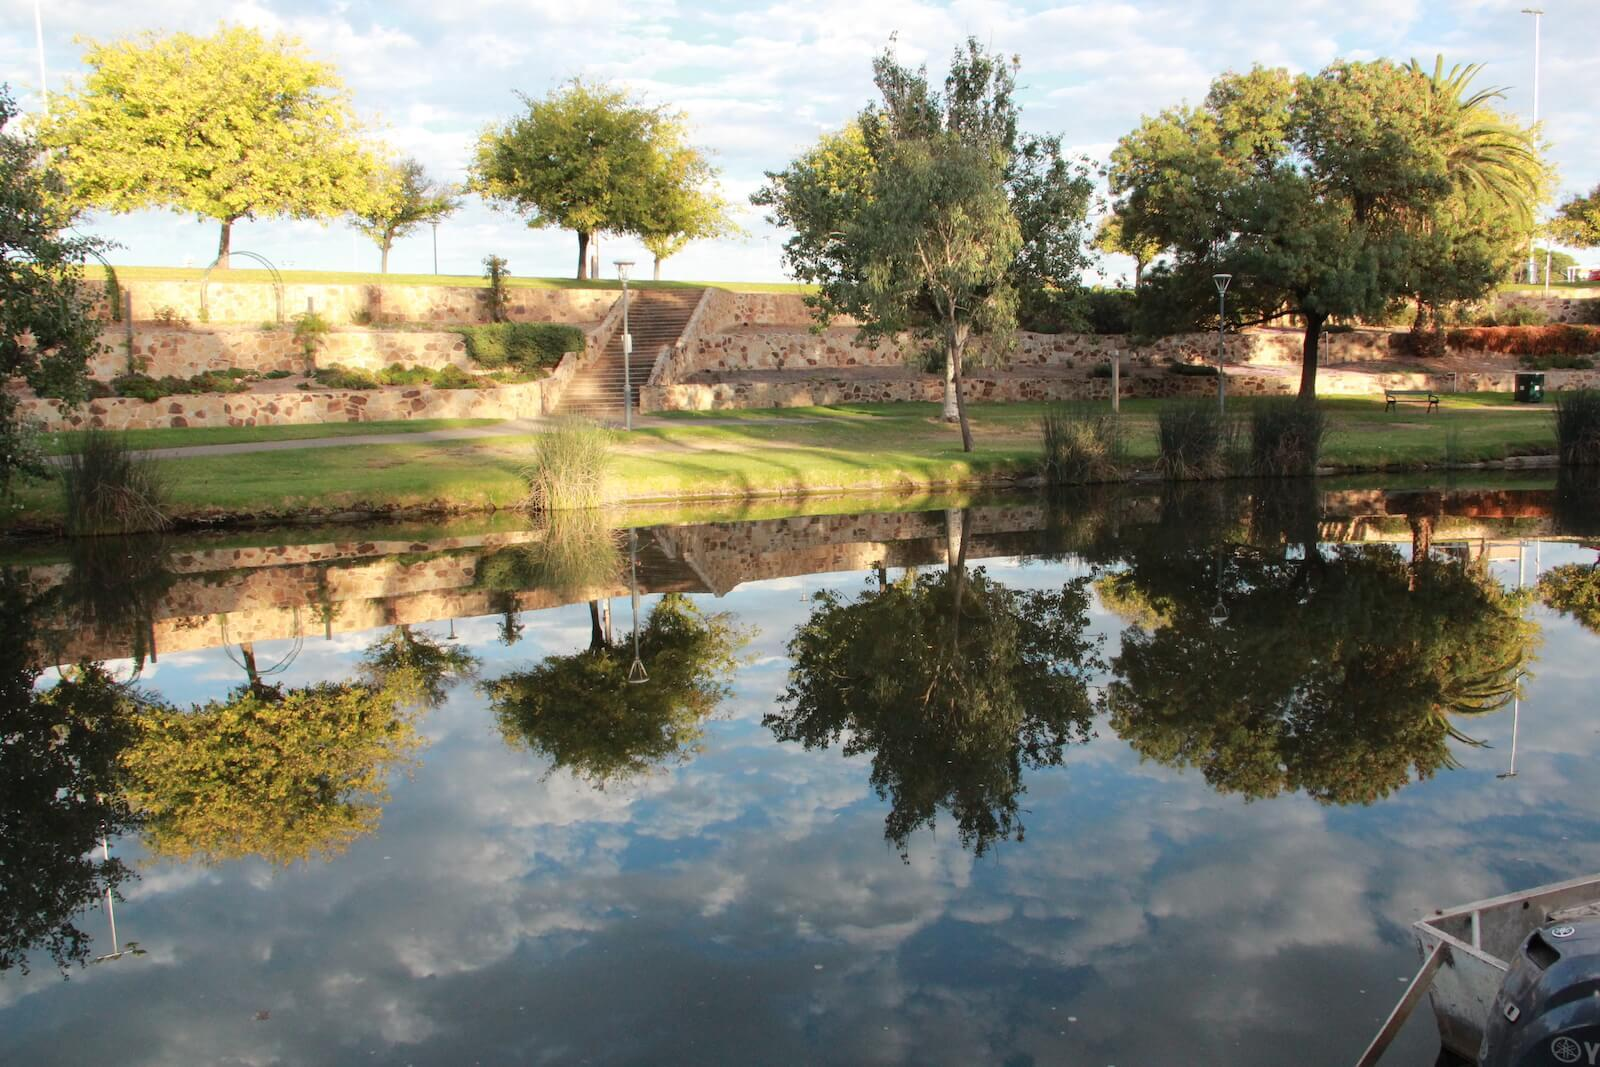 River Torrens Water Quality Improvement Project - Green Adelaide